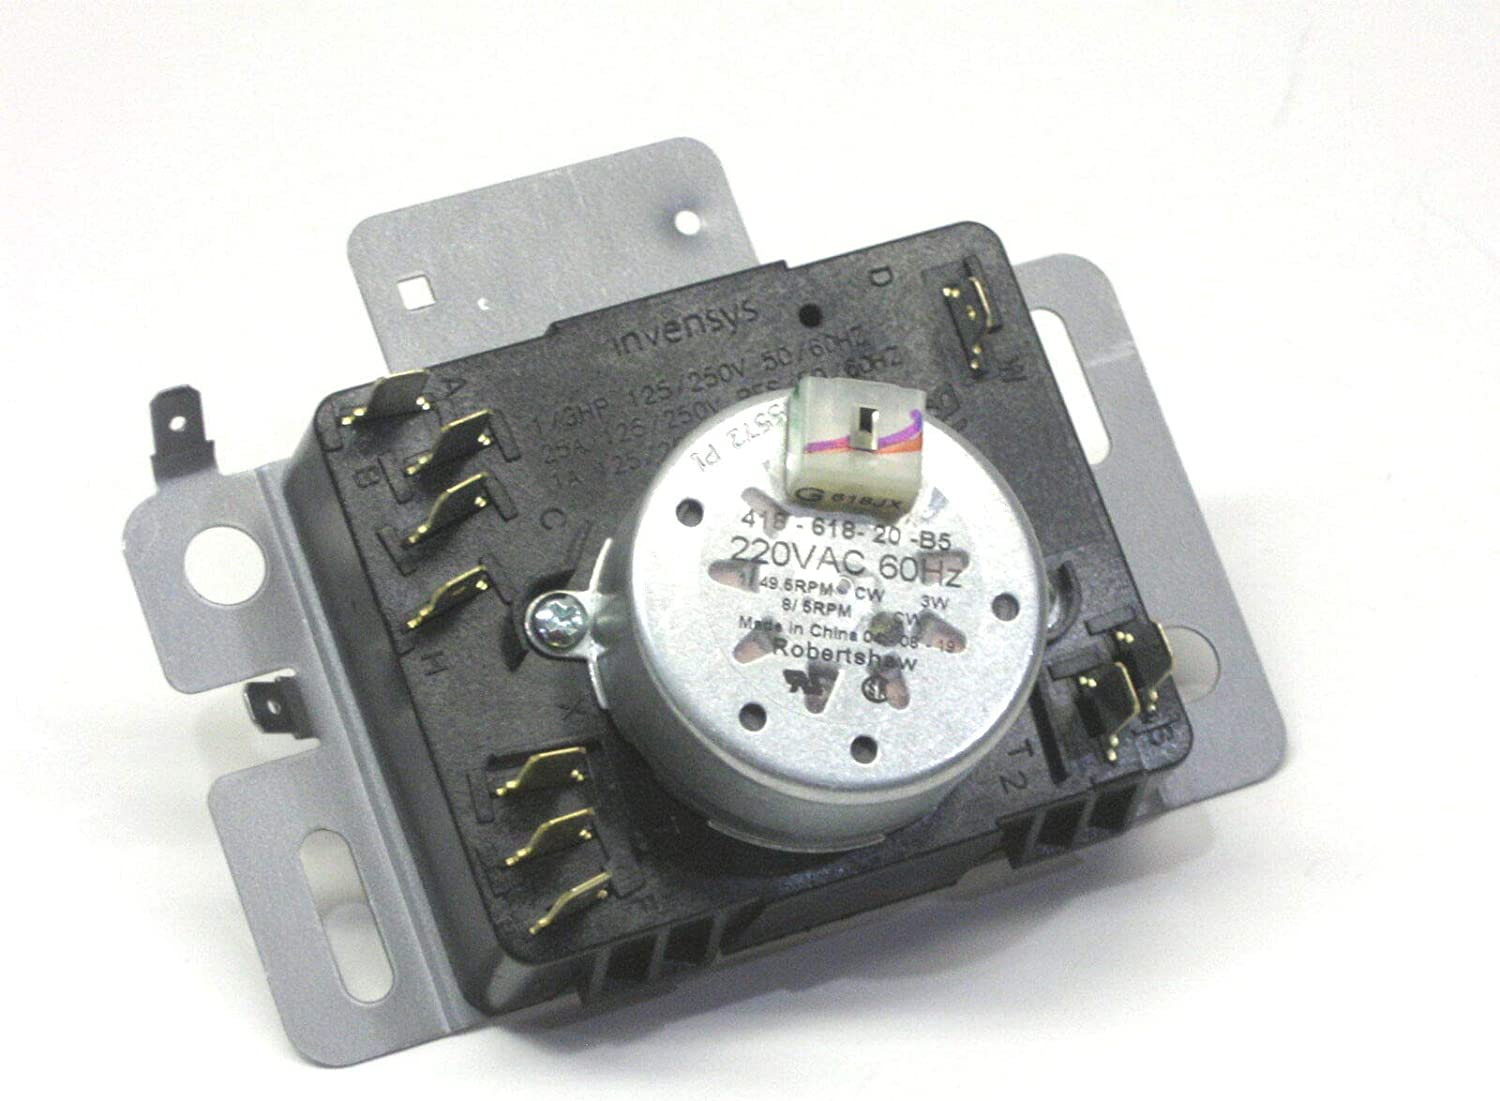 (NEW) Dryer Timer Control for WP Admiral WPW10436303 W10436303 AP6021393 and PS11754717 + many models in description